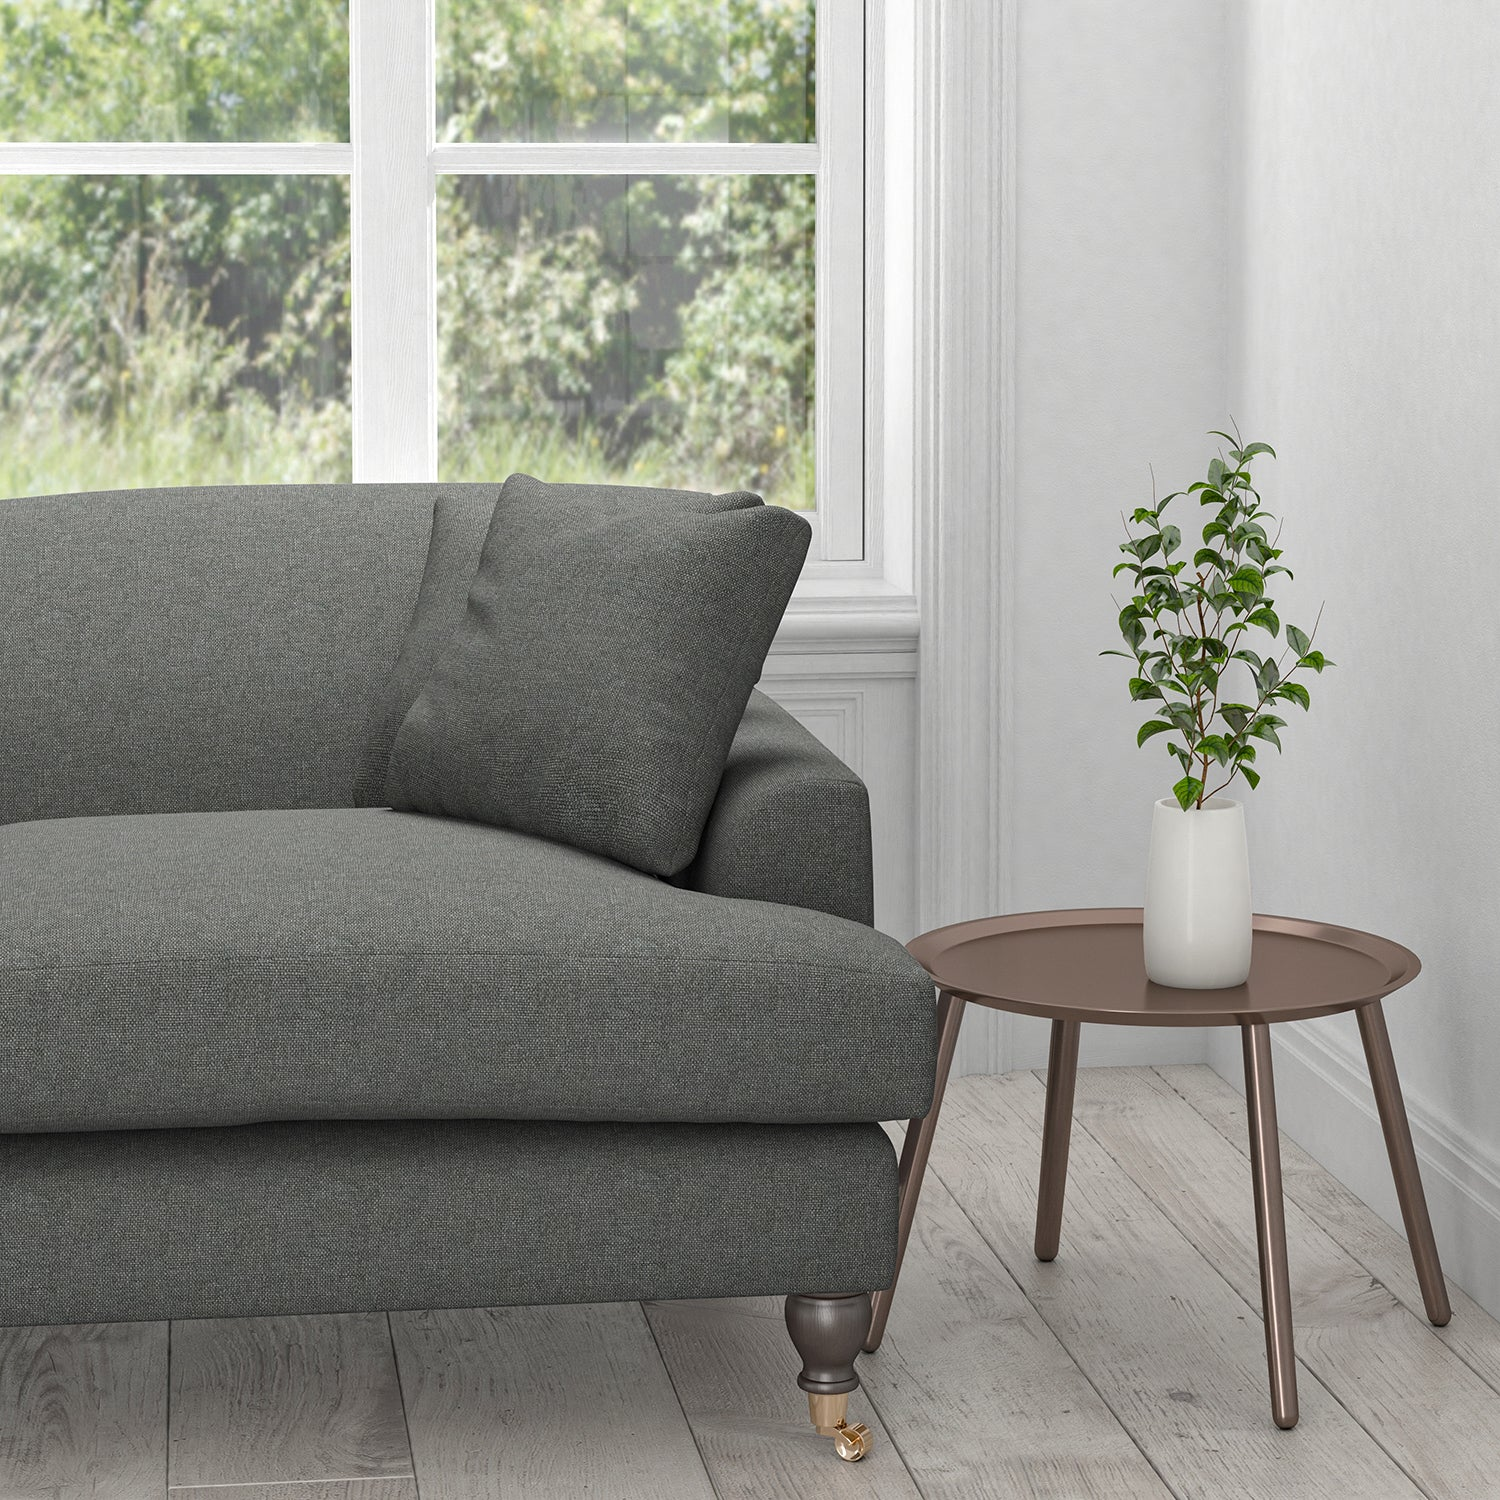 Sofa in a dark grey plain cotton upholstery fabric with a stain resistant finish